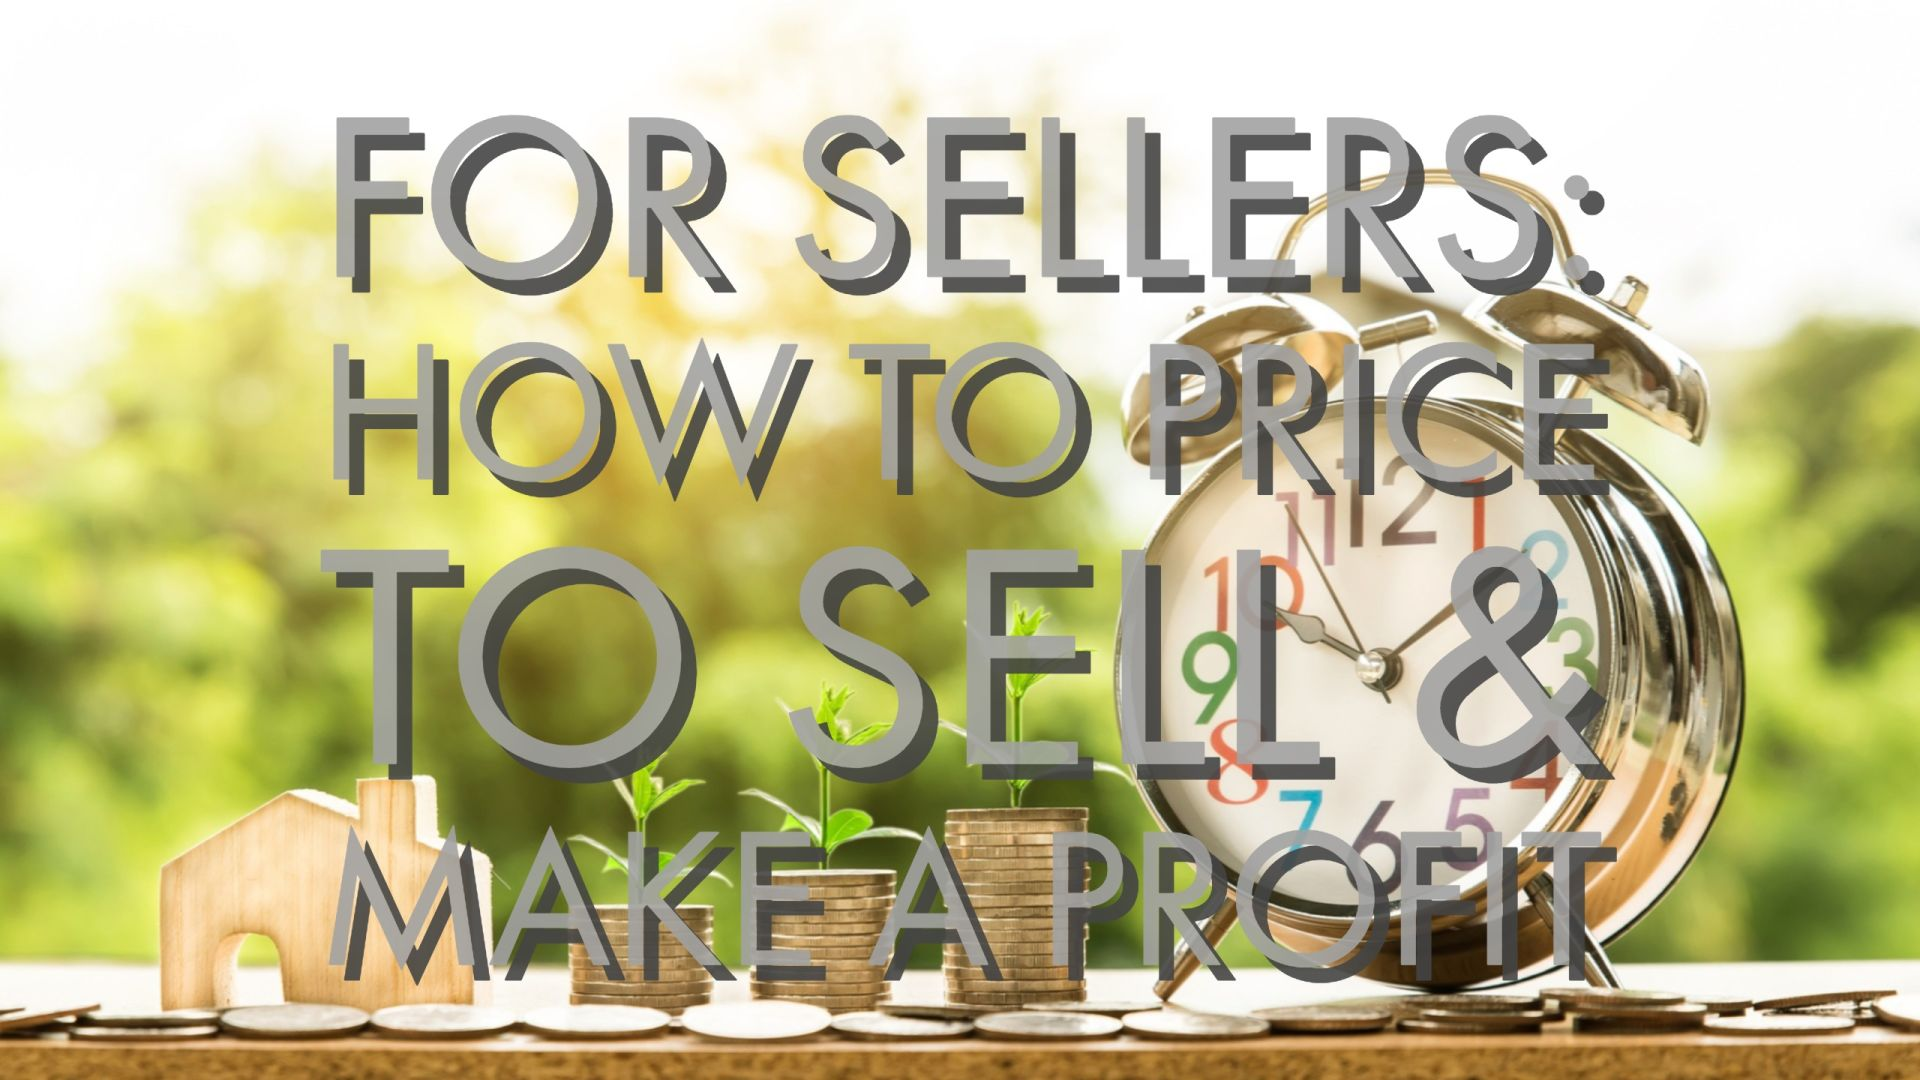 For Sellers: How to Price to Sell & Make a Profit